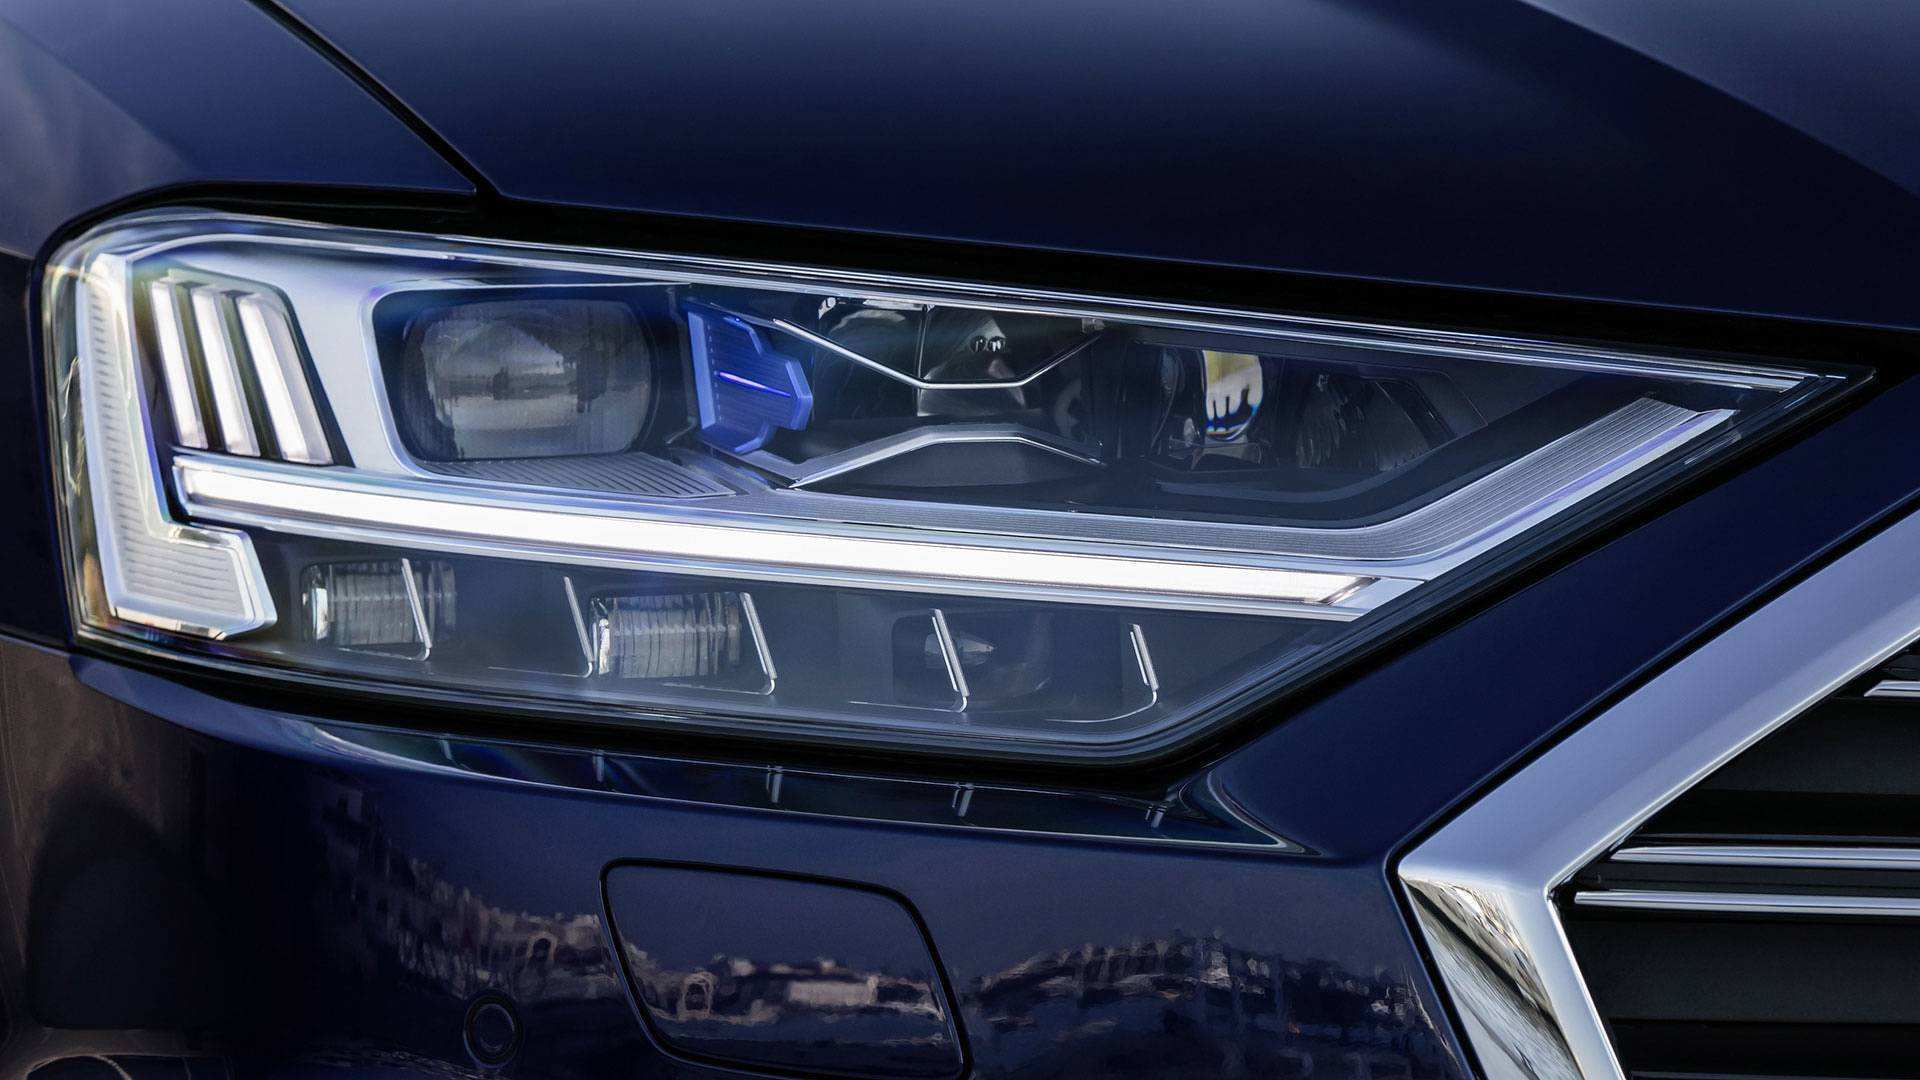 18 Gallery of 2019 Audi A7 Headlights Model by 2019 Audi A7 Headlights